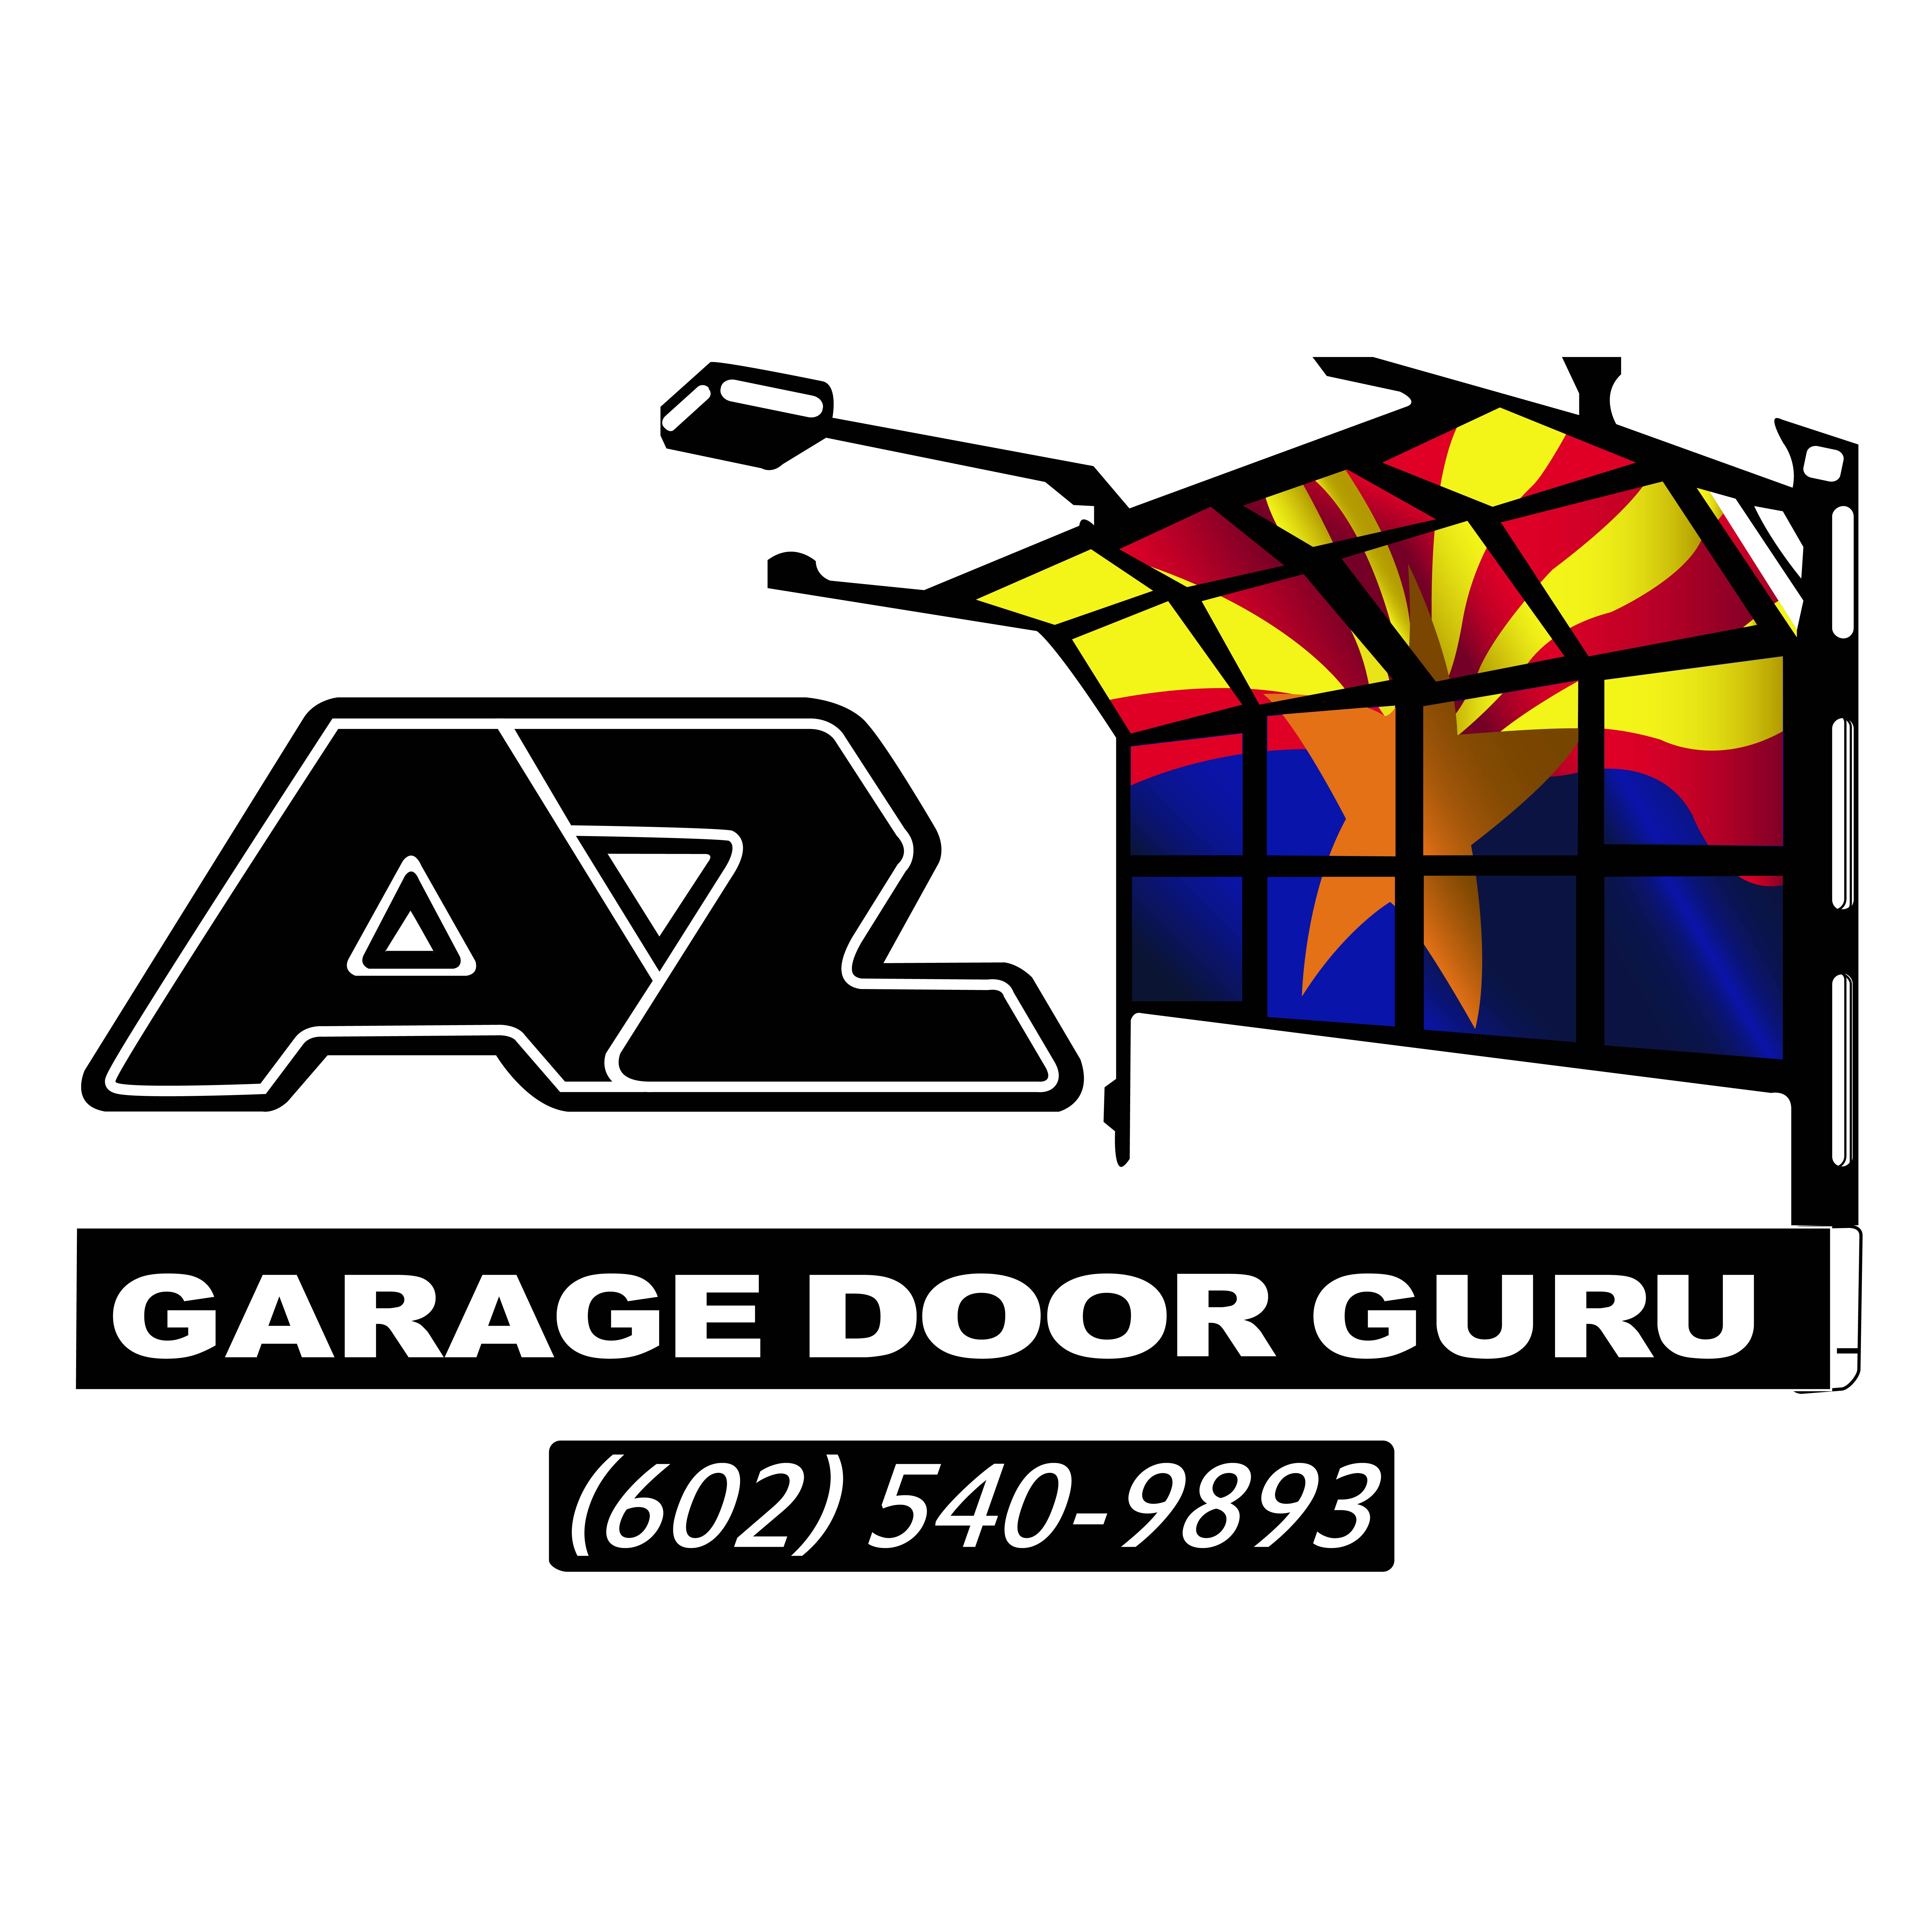 Garage Door Service in Phoenix Provides 24 Hour Emergency Service